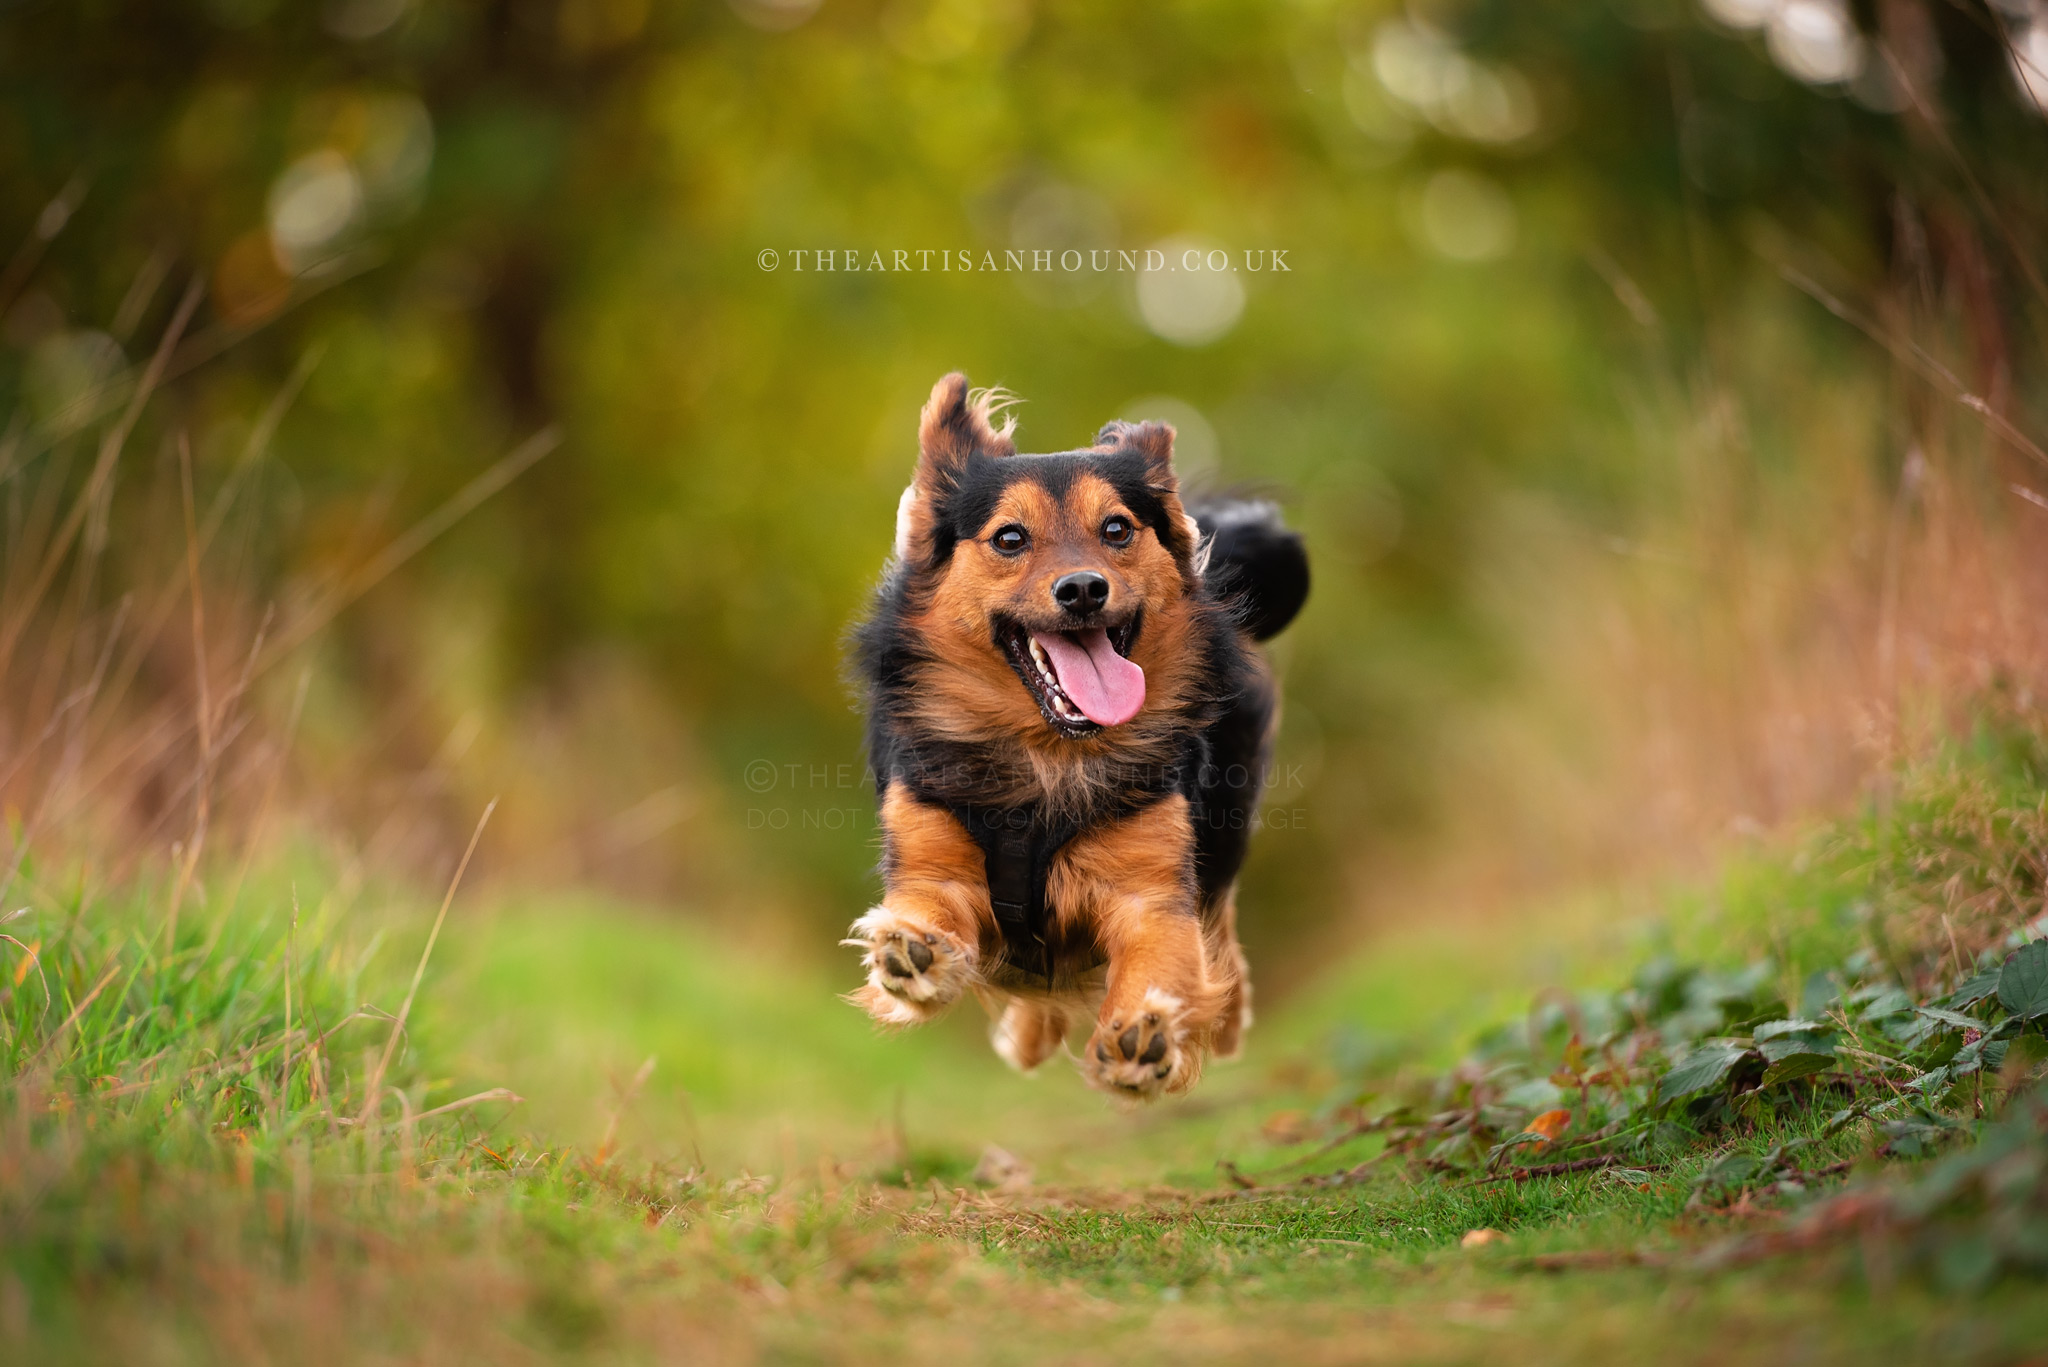 Black and tan crossbreed dog running towards camera